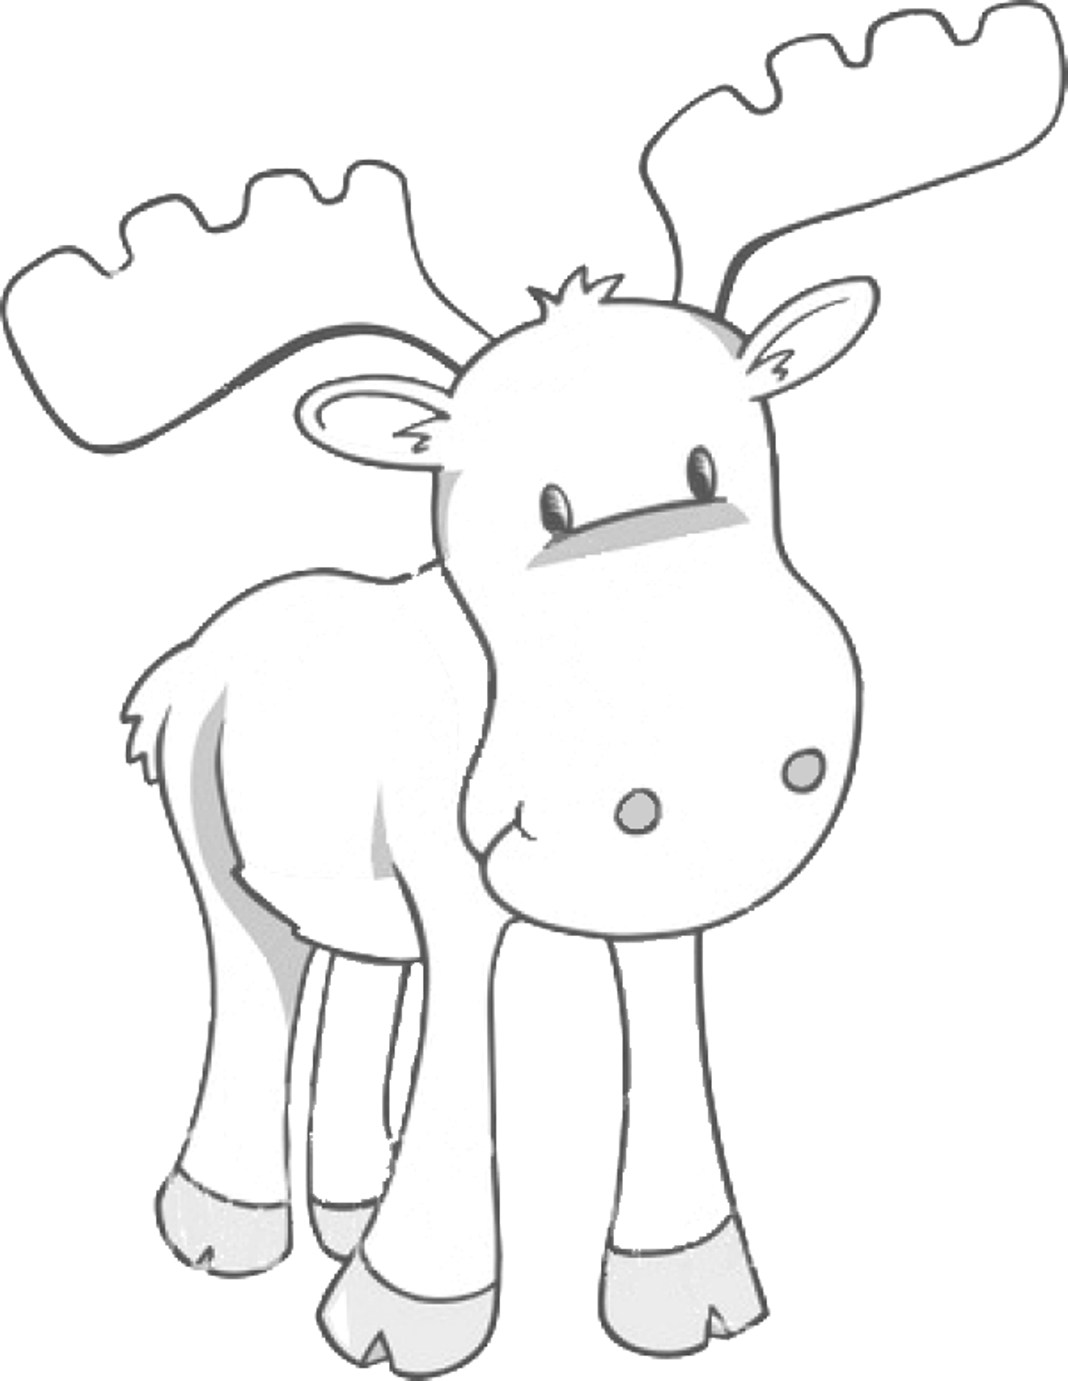 Moose Free Animal Coloring Pages For Kids